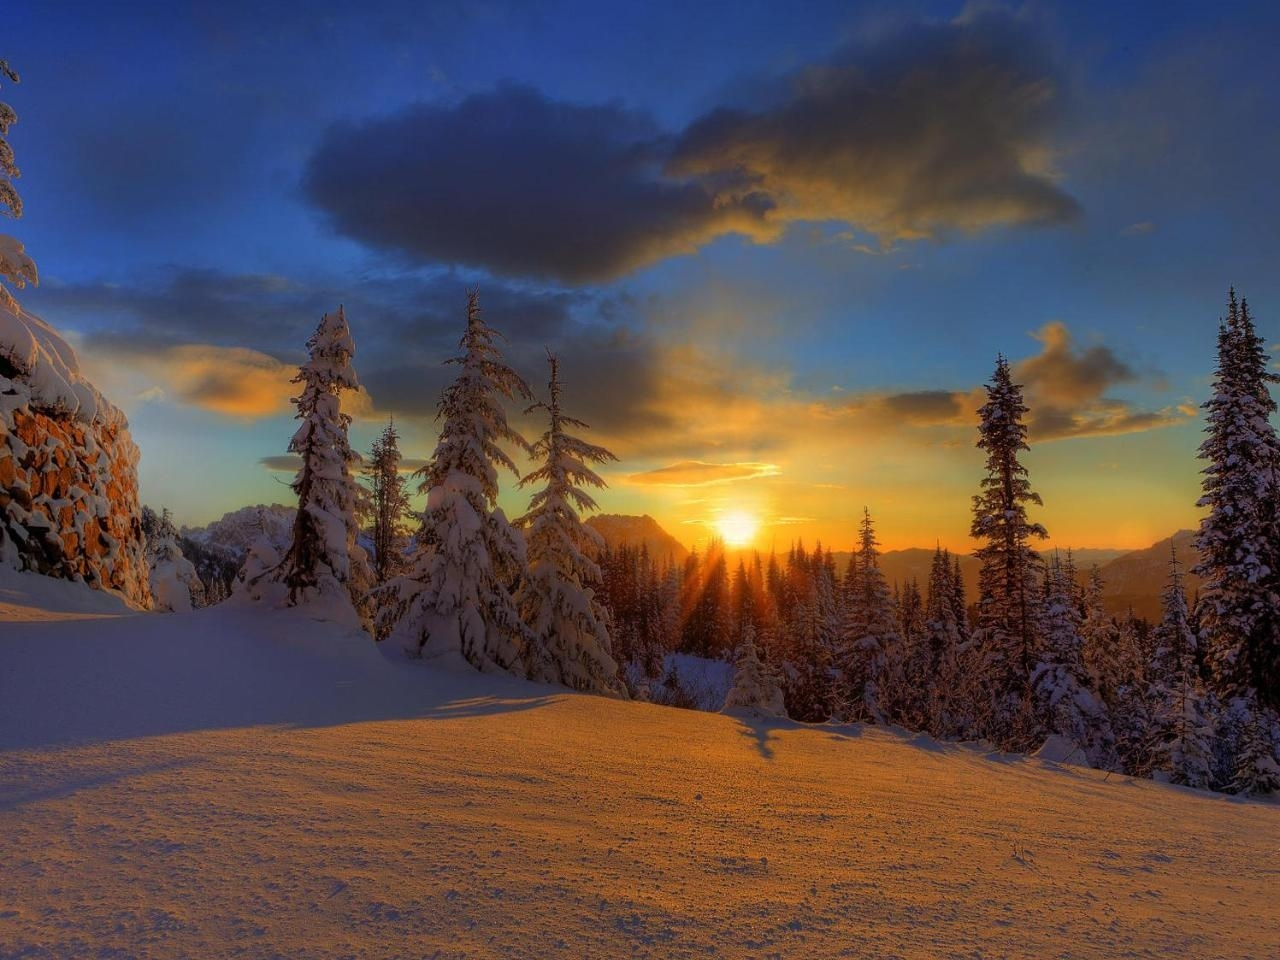 43238 download wallpaper Landscape, Winter, Nature screensavers and pictures for free